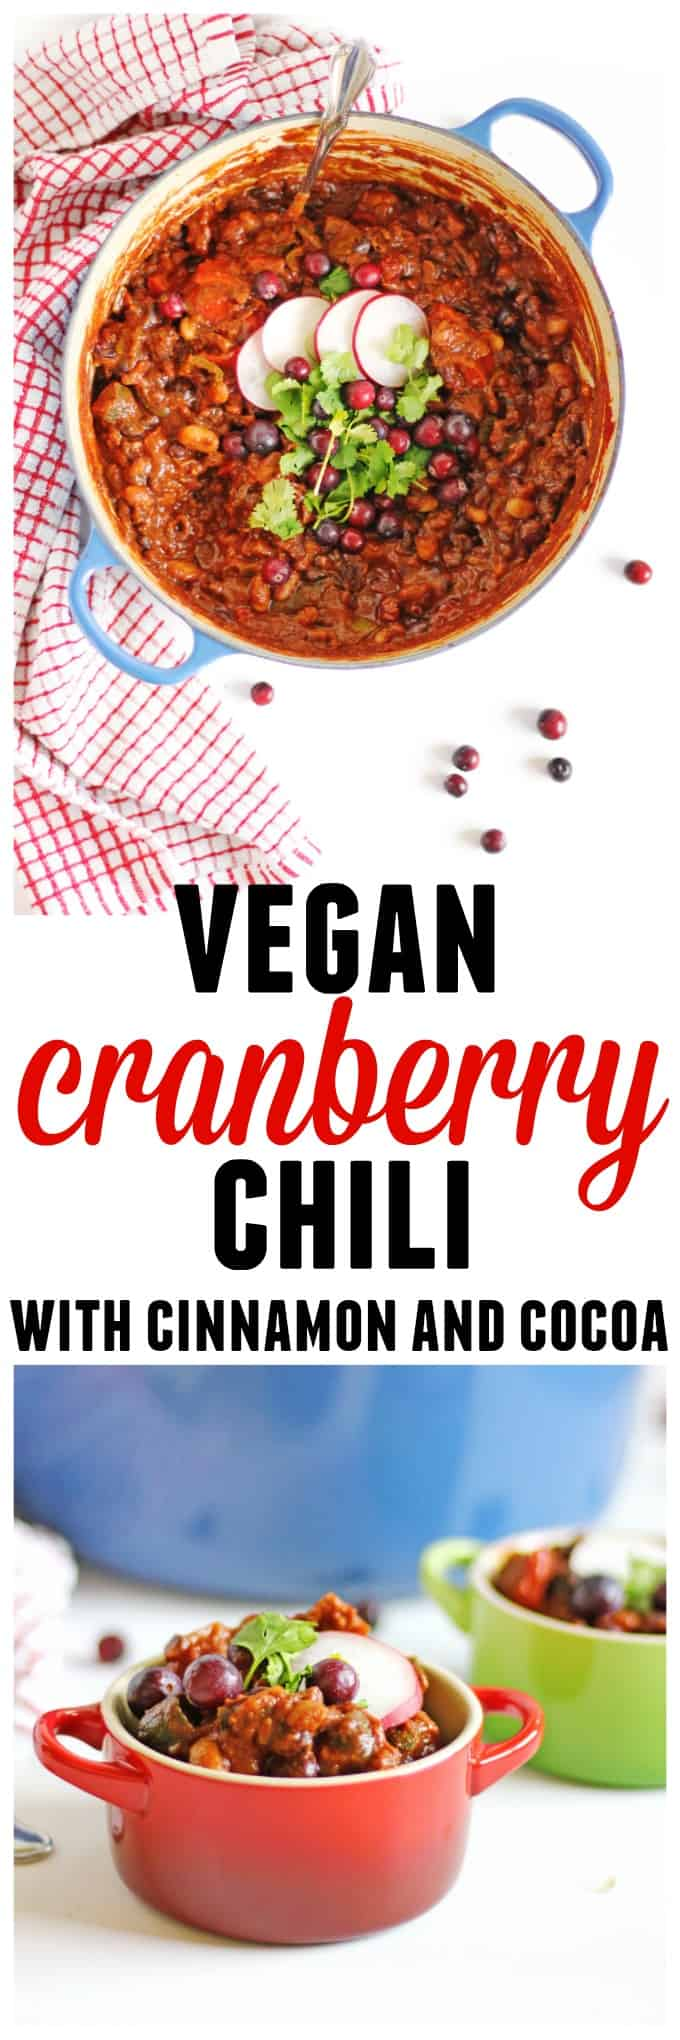 Vegan cranberry chili with cinnamon and cocoa recipe! A warming, cozy fall or winter dinner the whole family will love. // Rhubarbarians // vegan dinner / vegetarian dinner / vegan comfort food / vegetarian comfort food / cranberry recipes / savory cranberry / #vegan #vegandinner #comfortfood #falldinner #cranberry #vegetarian